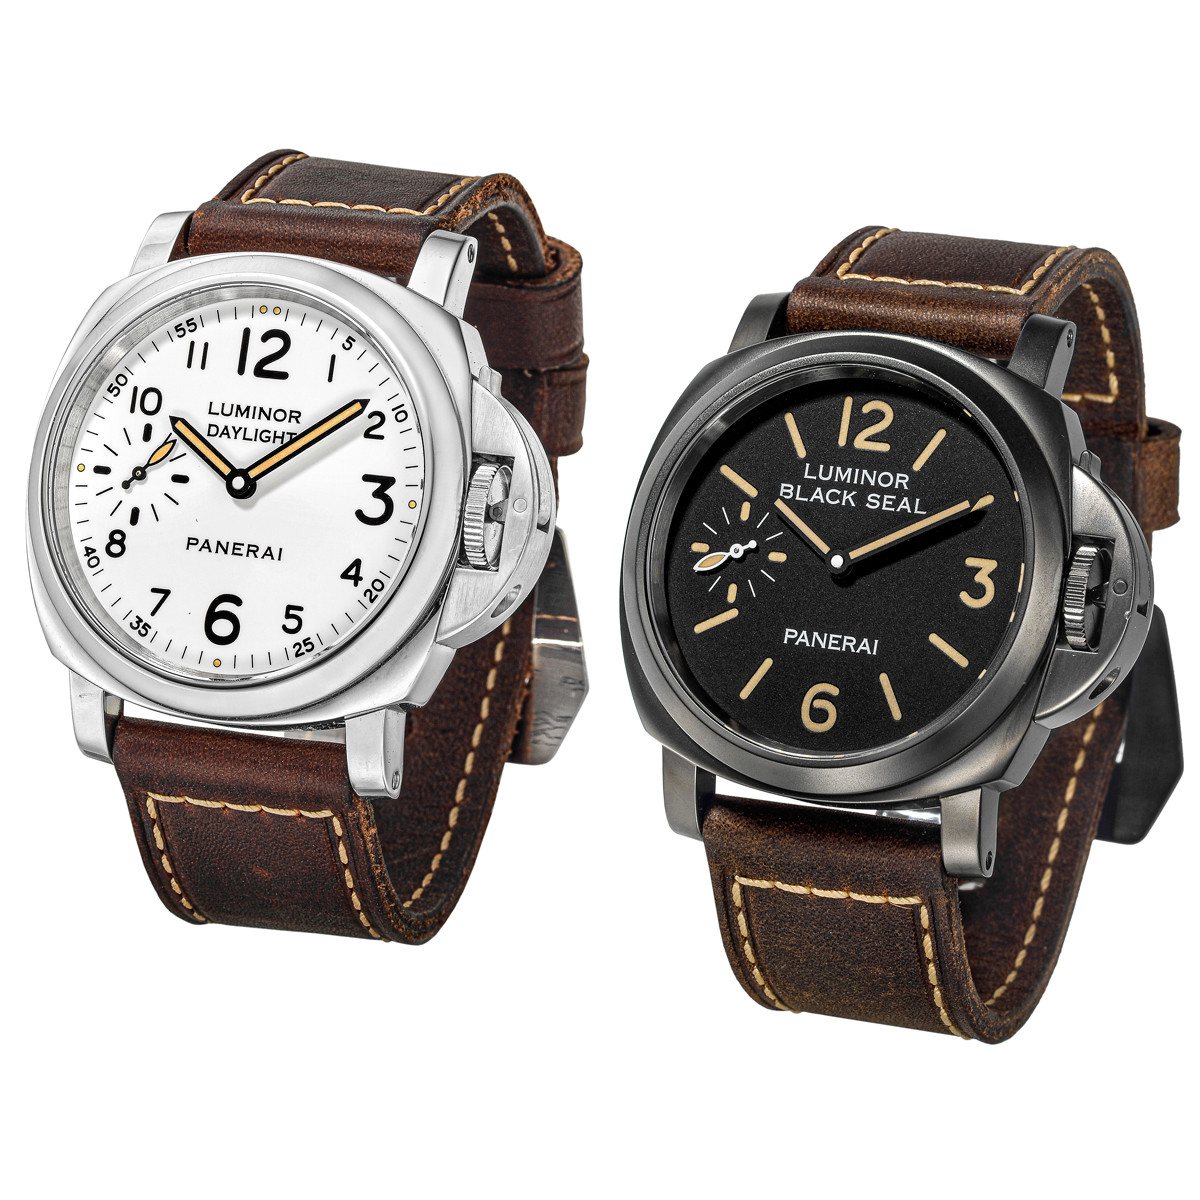 Luminor 8-Days Limited Edition Set (PAM00594/PAM00602)